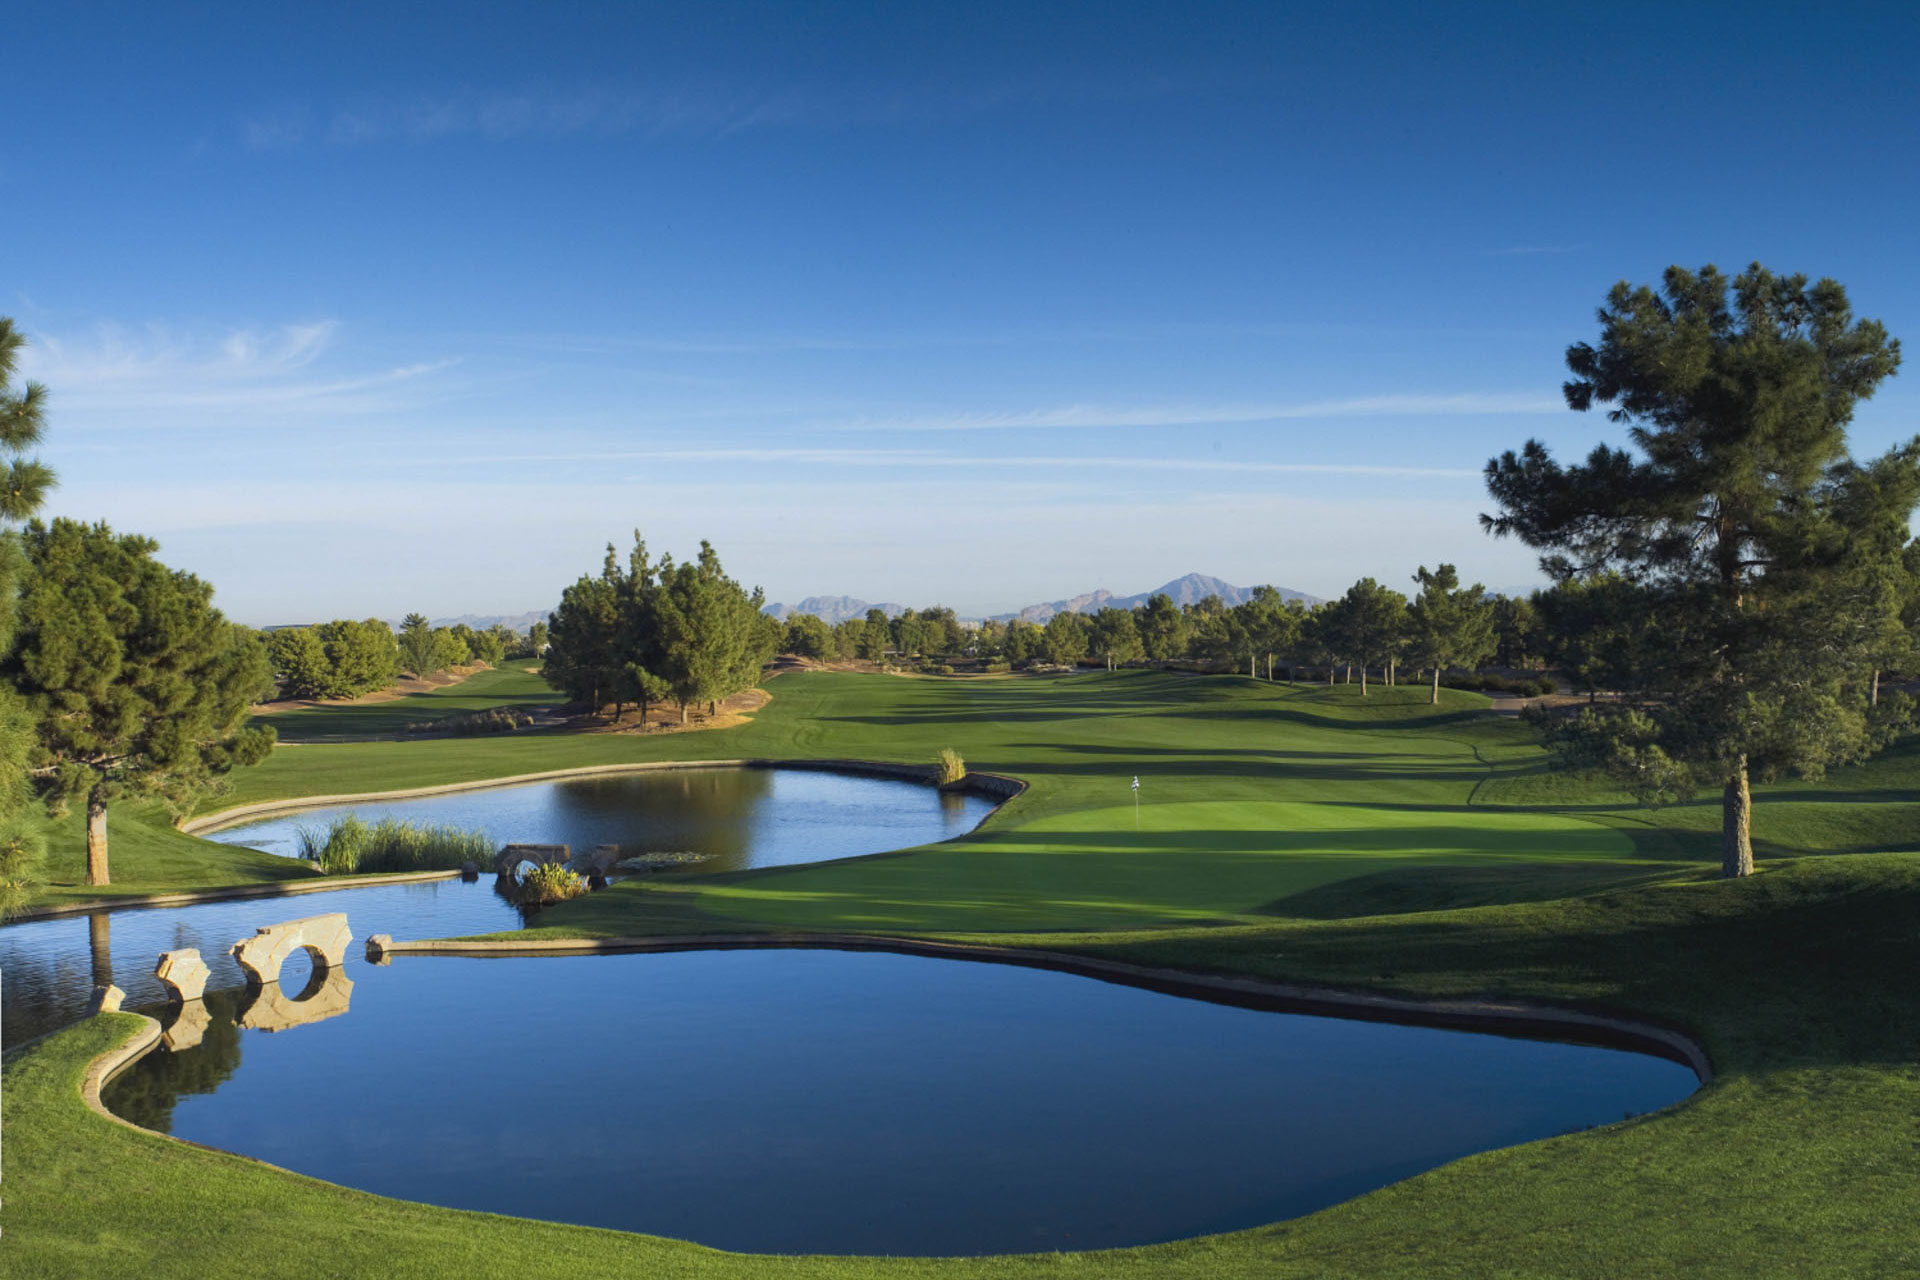 Discount Golf Scottsdale | Discount Golf in Scottsdale AZ on old scottsdale area map, scottsdale mountain, estancia scottsdale map, scottsdale sports complex map, scottsdale silverado golf course, troon north golf course map, scottsdale sightseeing map, scottsdale city limits map, phoenician golf course map, scottsdale road map, scottsdale bike paths map, scottsdale clubs map, phuket golf map, gilbert az area map, scottsdale airport map, scottsdale private golf clubs, scottsdale resort map, scottsdale 16th hole,